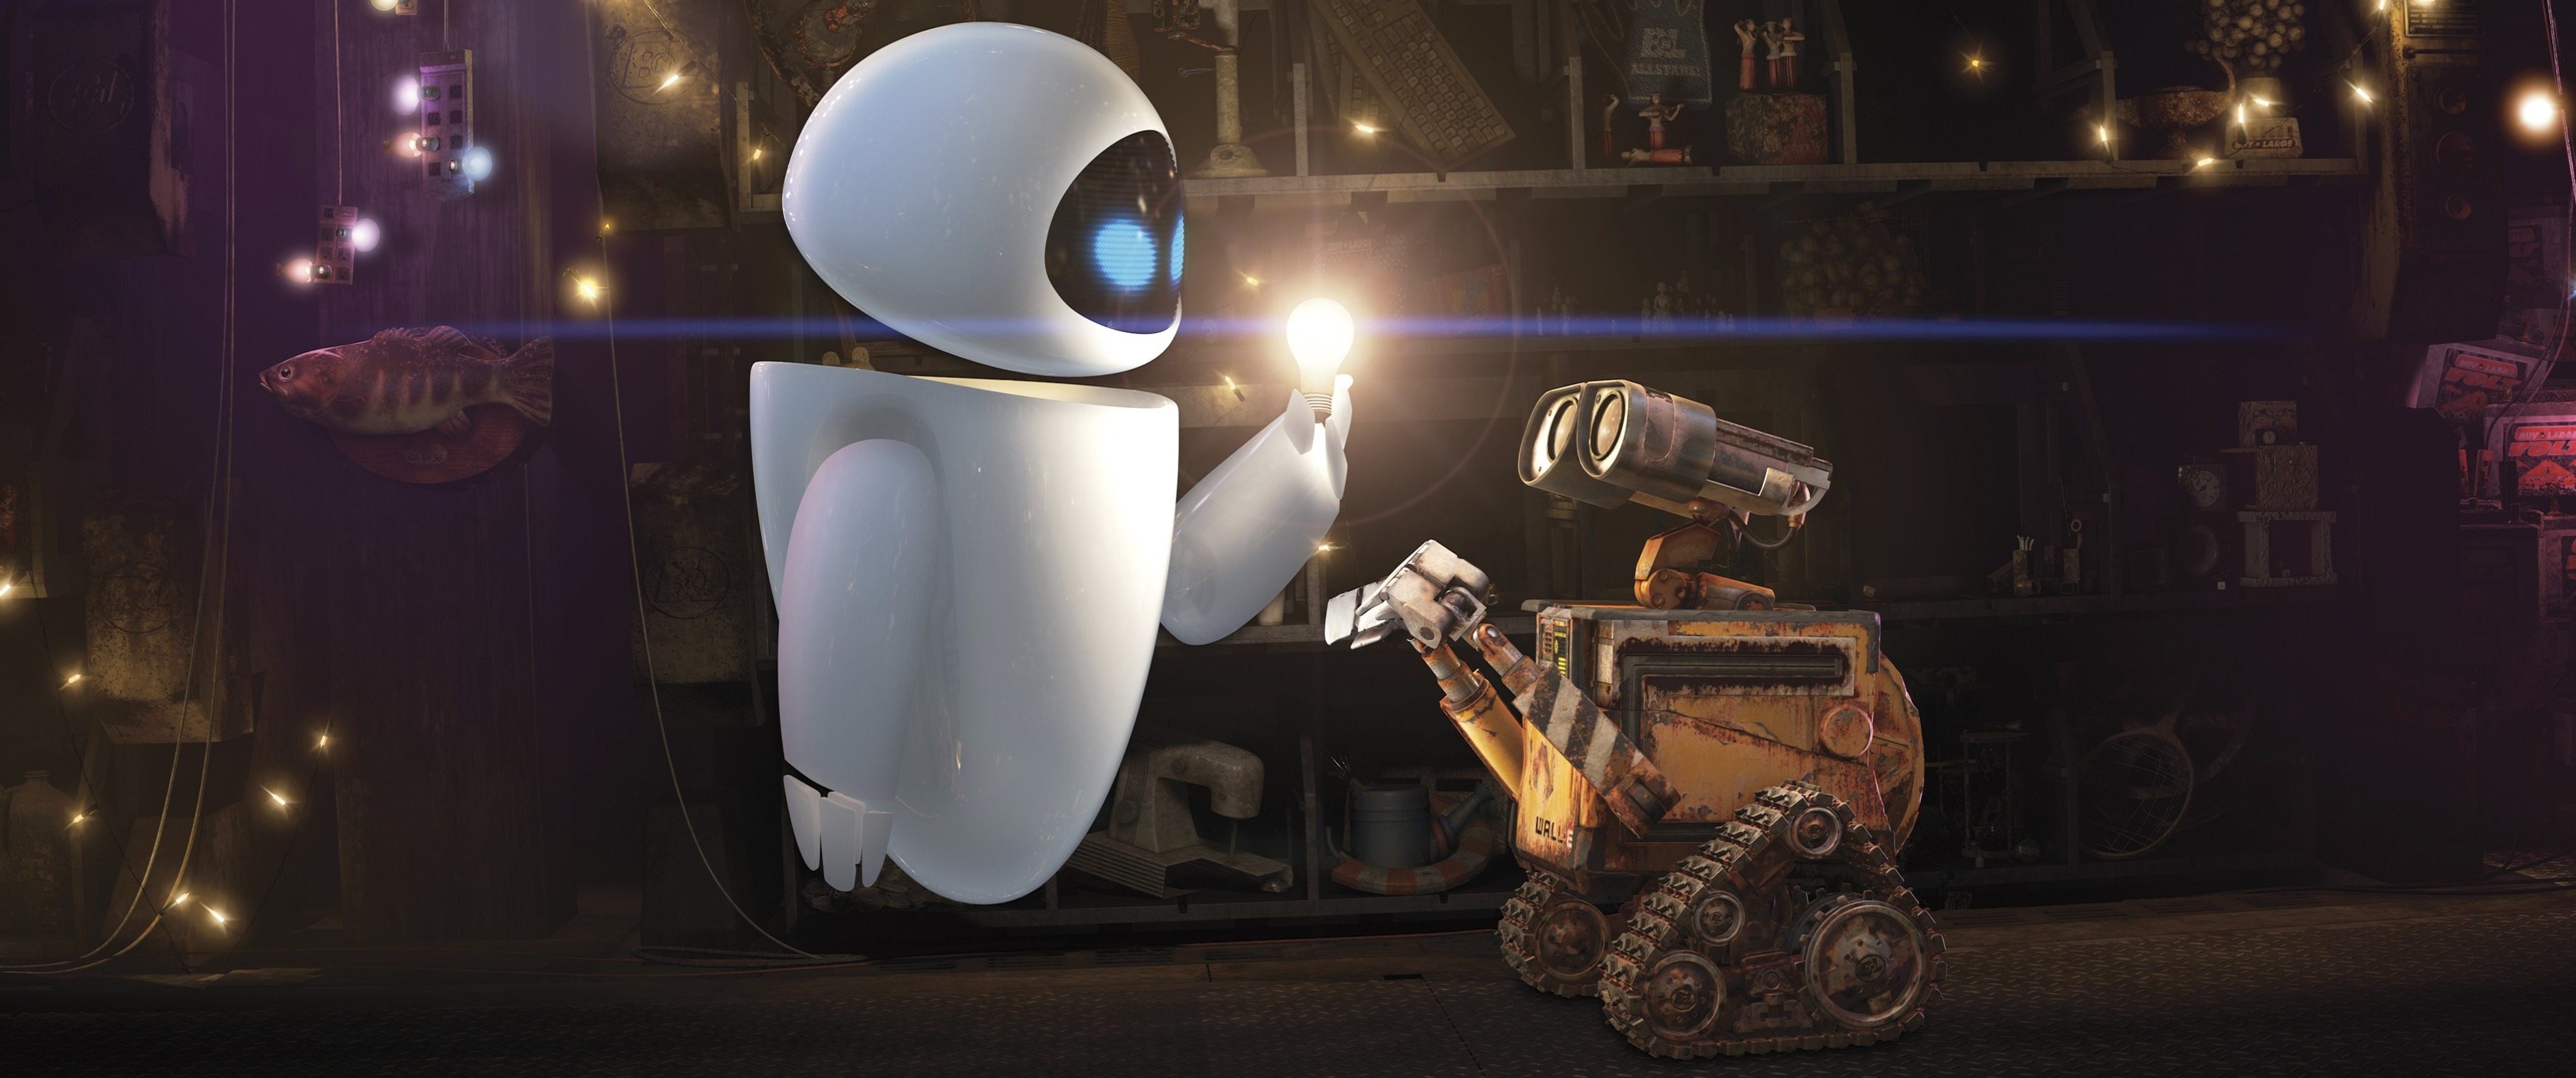 72 Wall    E HD Wallpapers   Background Images   Wallpaper Abyss HD Wallpaper   Background Image ID 587128